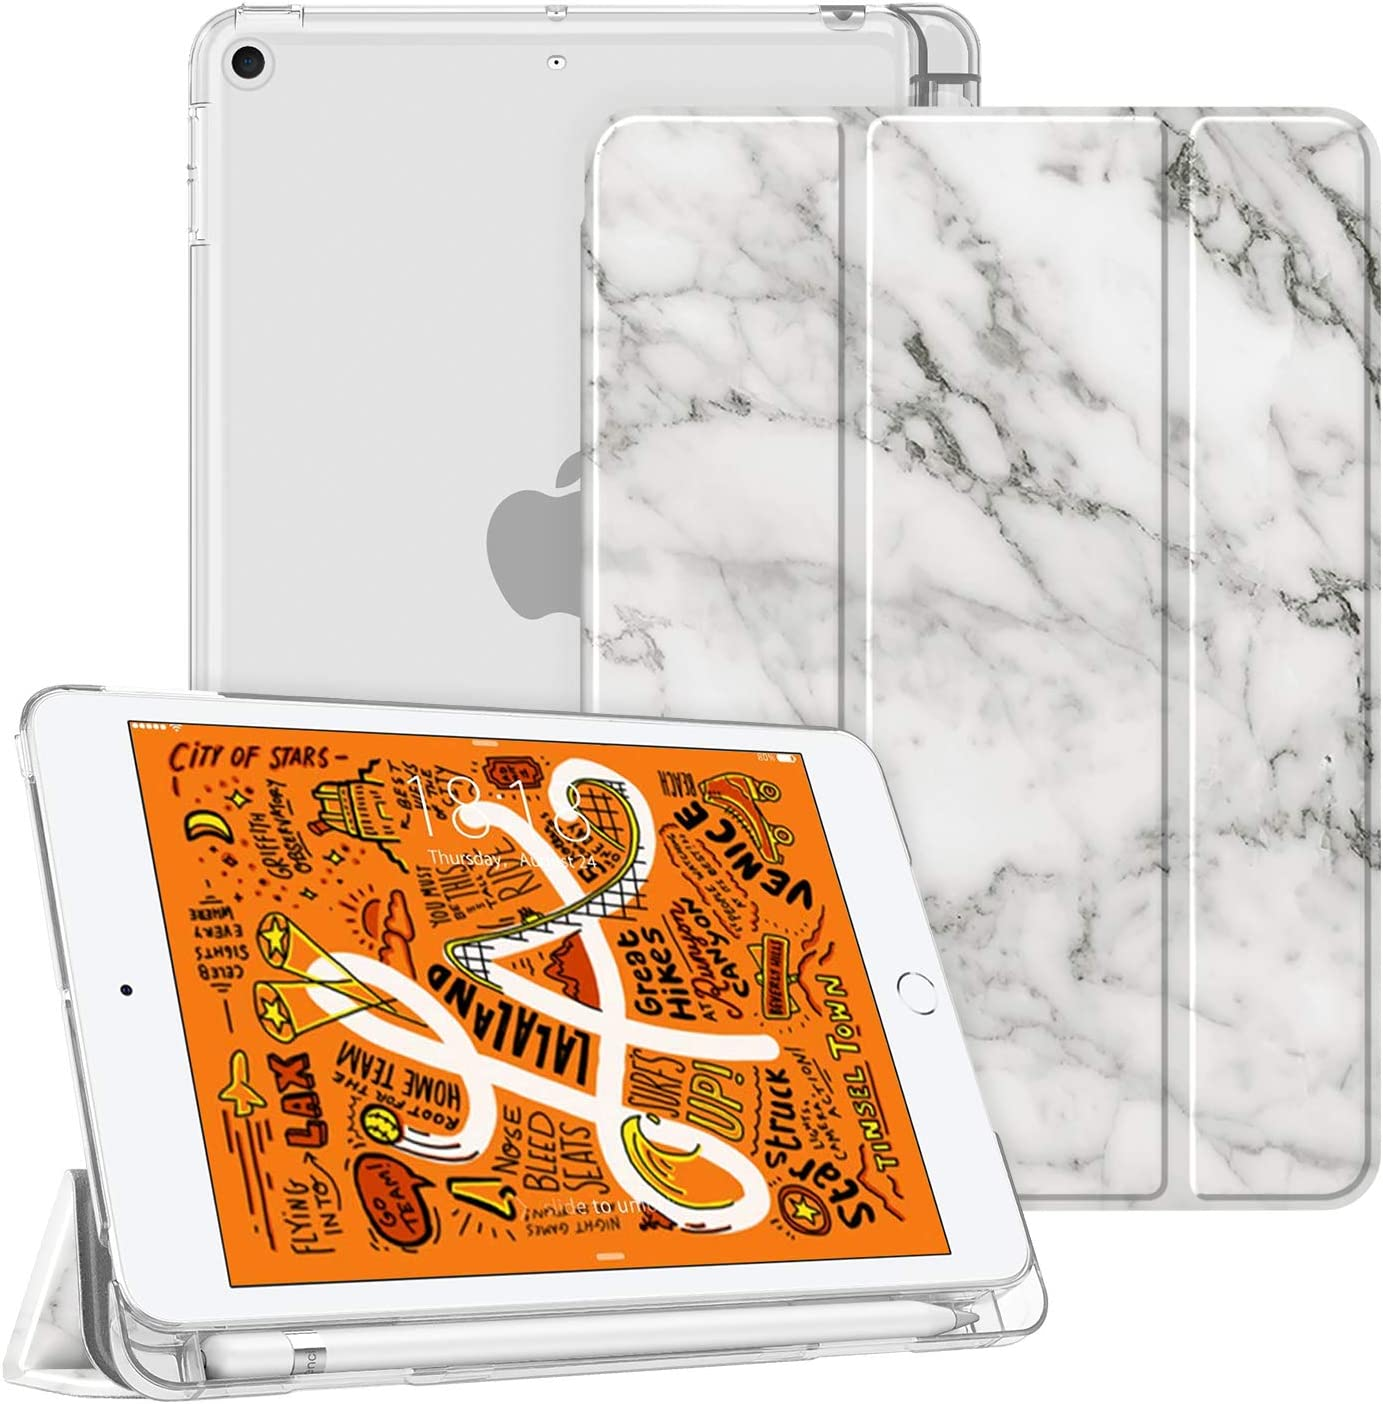 Fintie Case for iPad Mini 5 2019 - Lightweight Slim Shell Cover with Translucent Frosted Back Protector Supports Auto Wake/Sleep for iPad Mini 5th Generation 7.9 Inch, Marble White